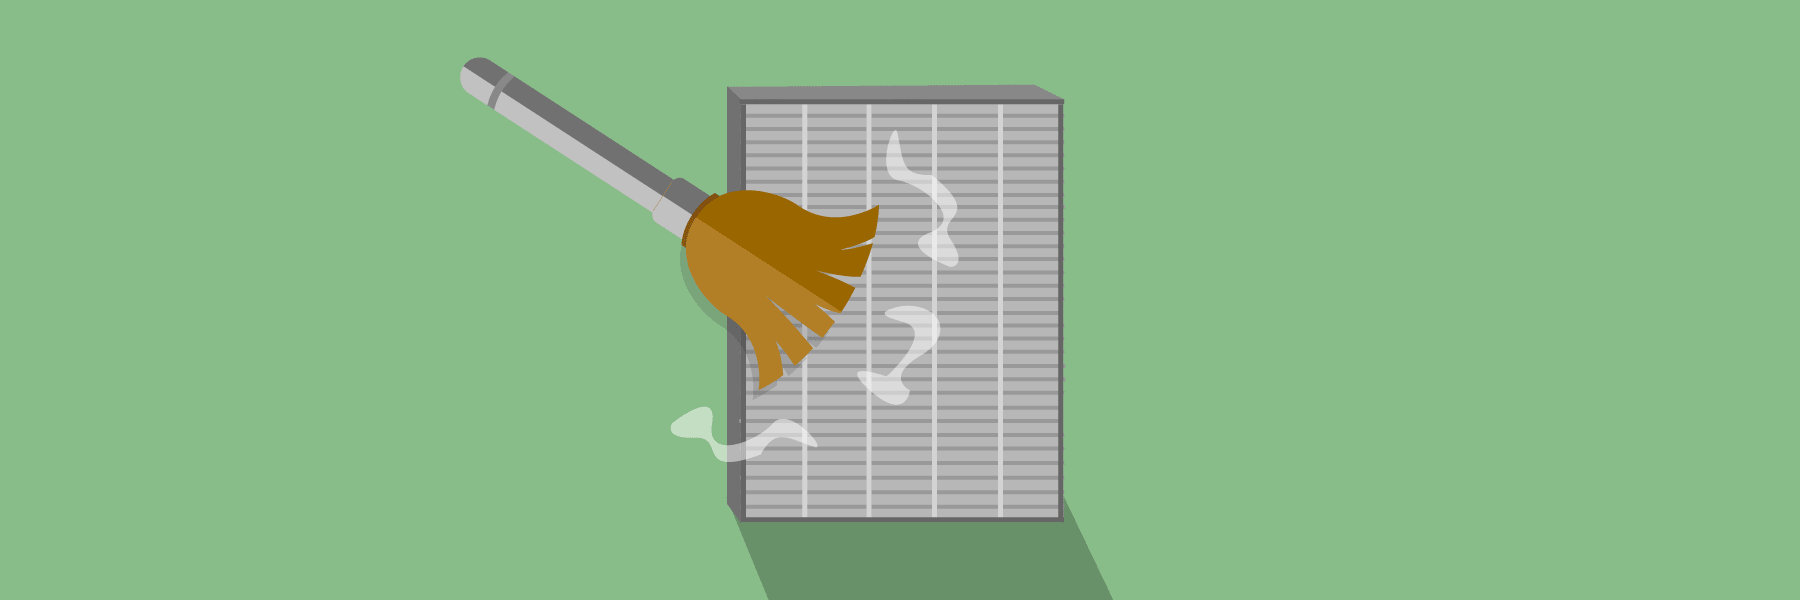 How To Clean a Humidifier Filter